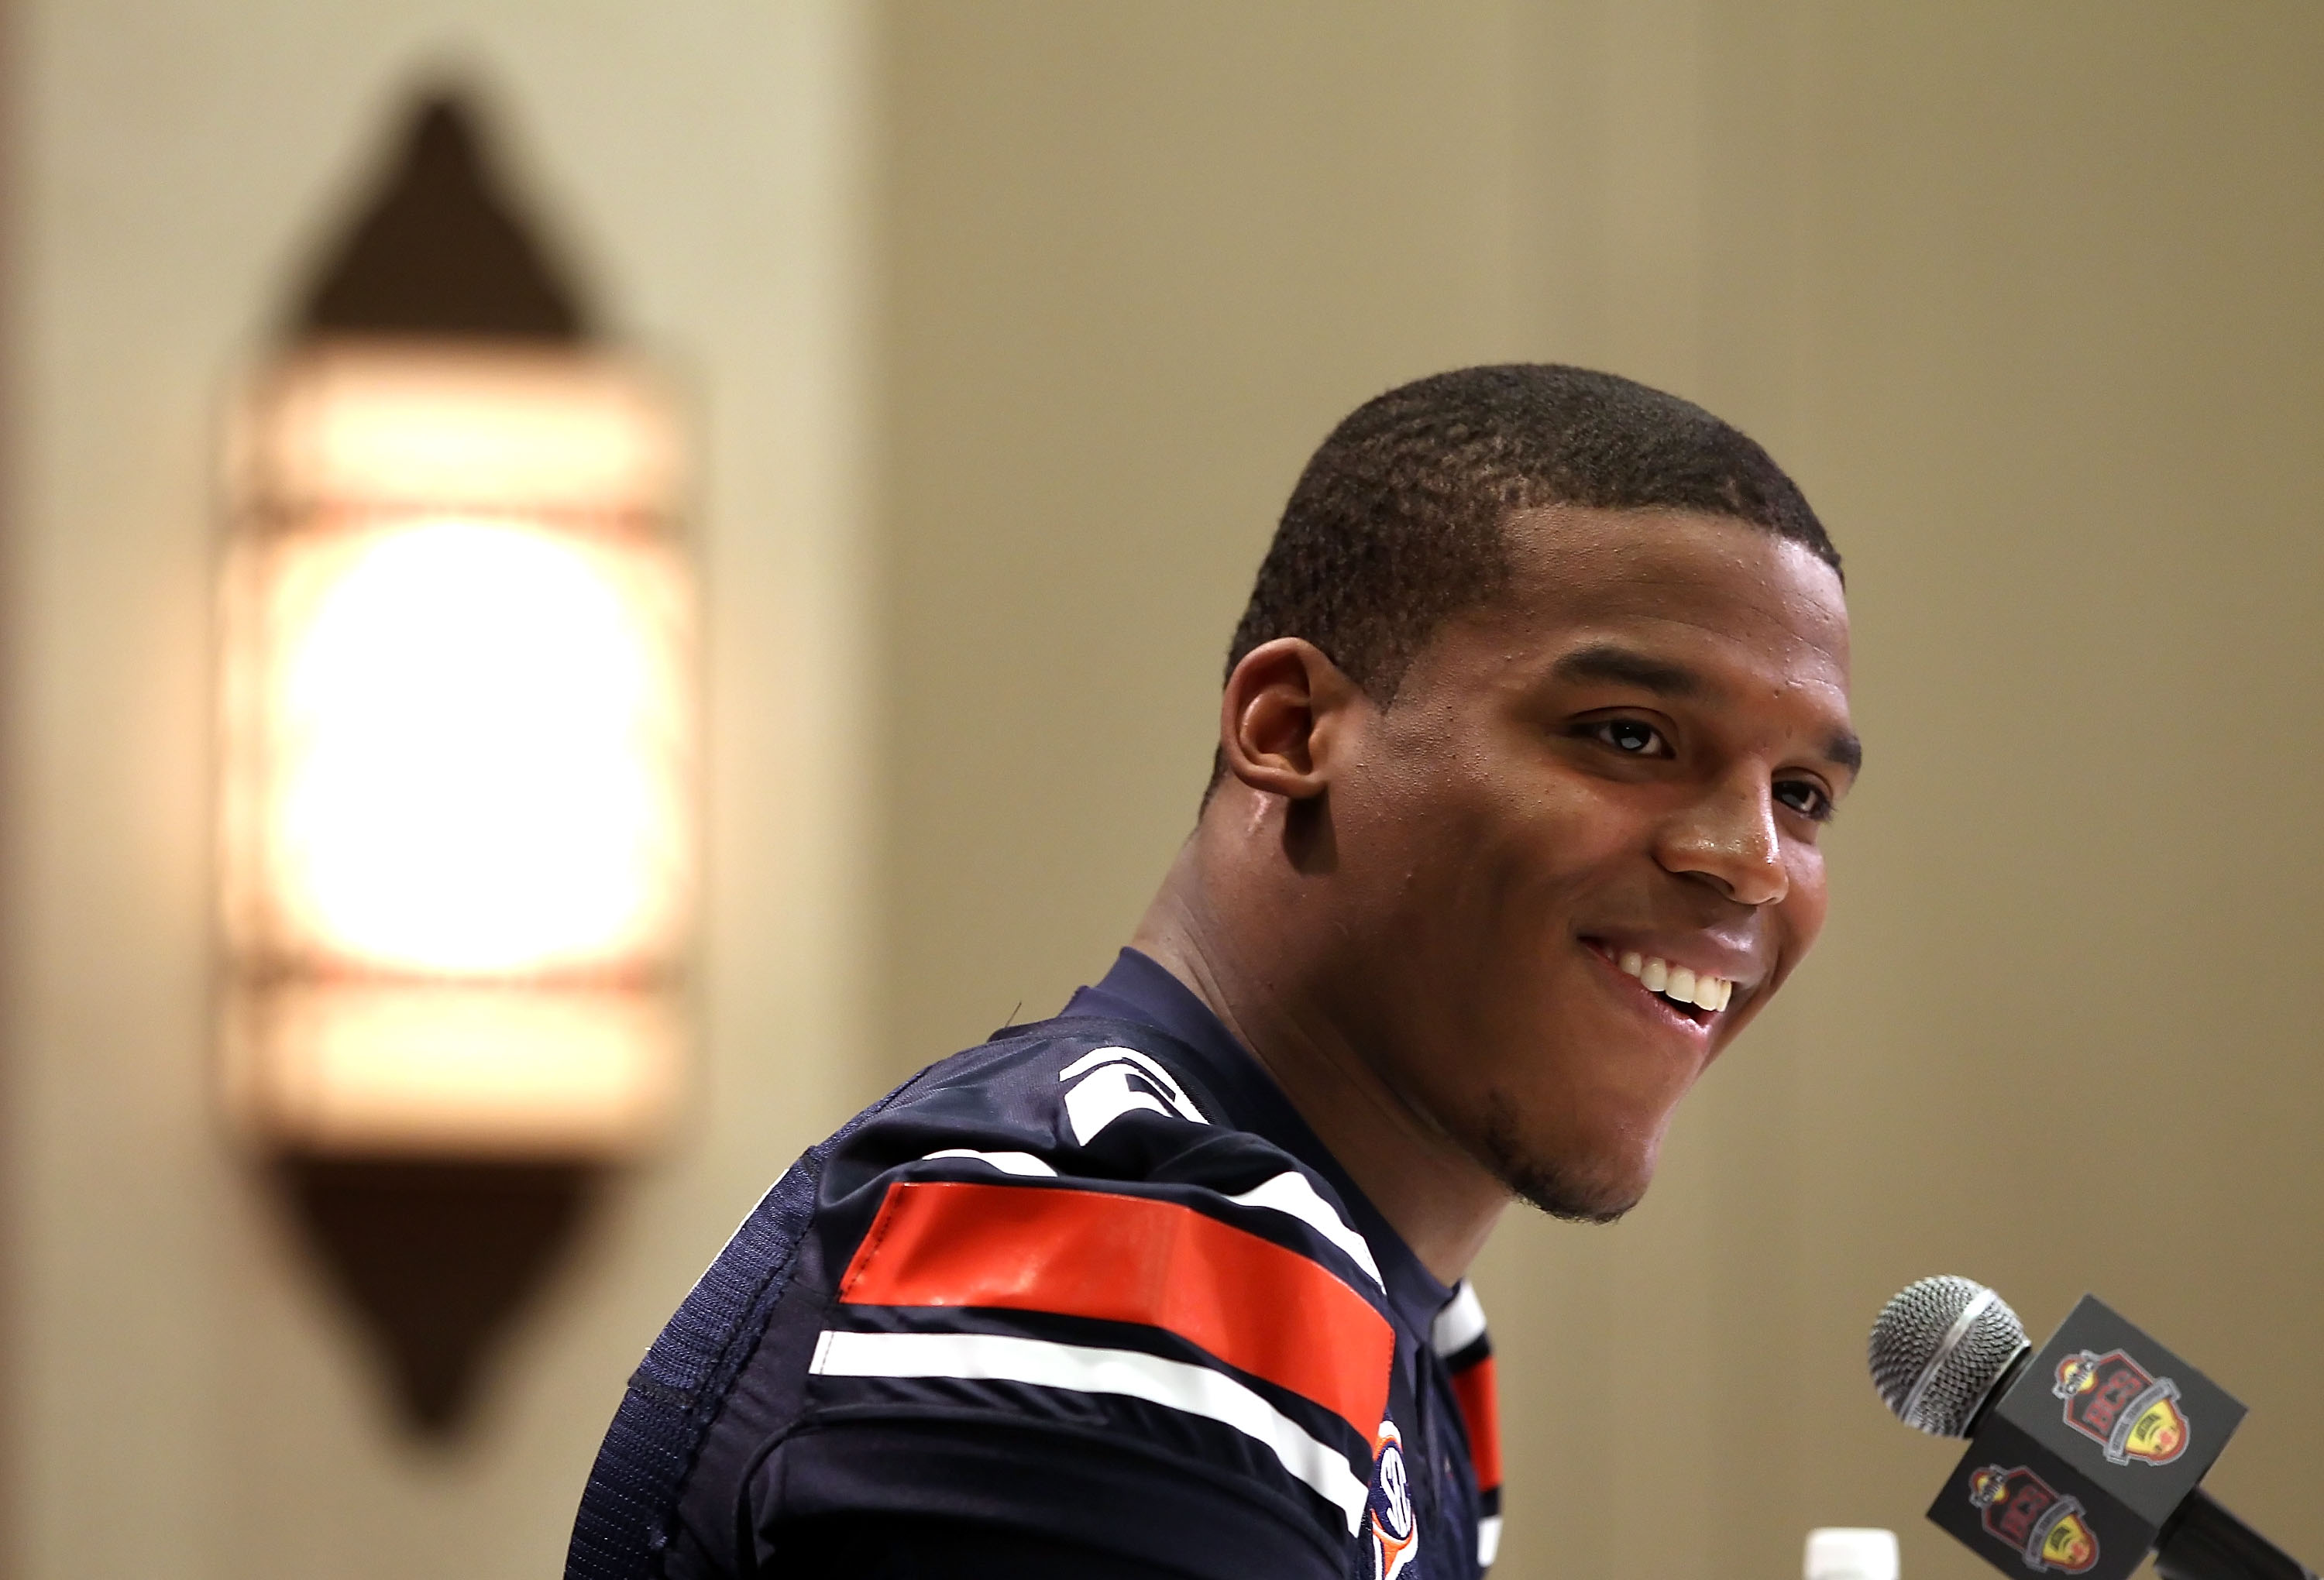 SCOTTSDALE, AZ - JANUARY 07:  Quarterback Cam Newton #2 of the Auburn Tigers speaks during Media Day for the Tostitos BCS National Championship Game at the JW Marriott Camelback Inn on January 7, 2011 in Scottsdale, Arizona.  (Photo by Christian Petersen/